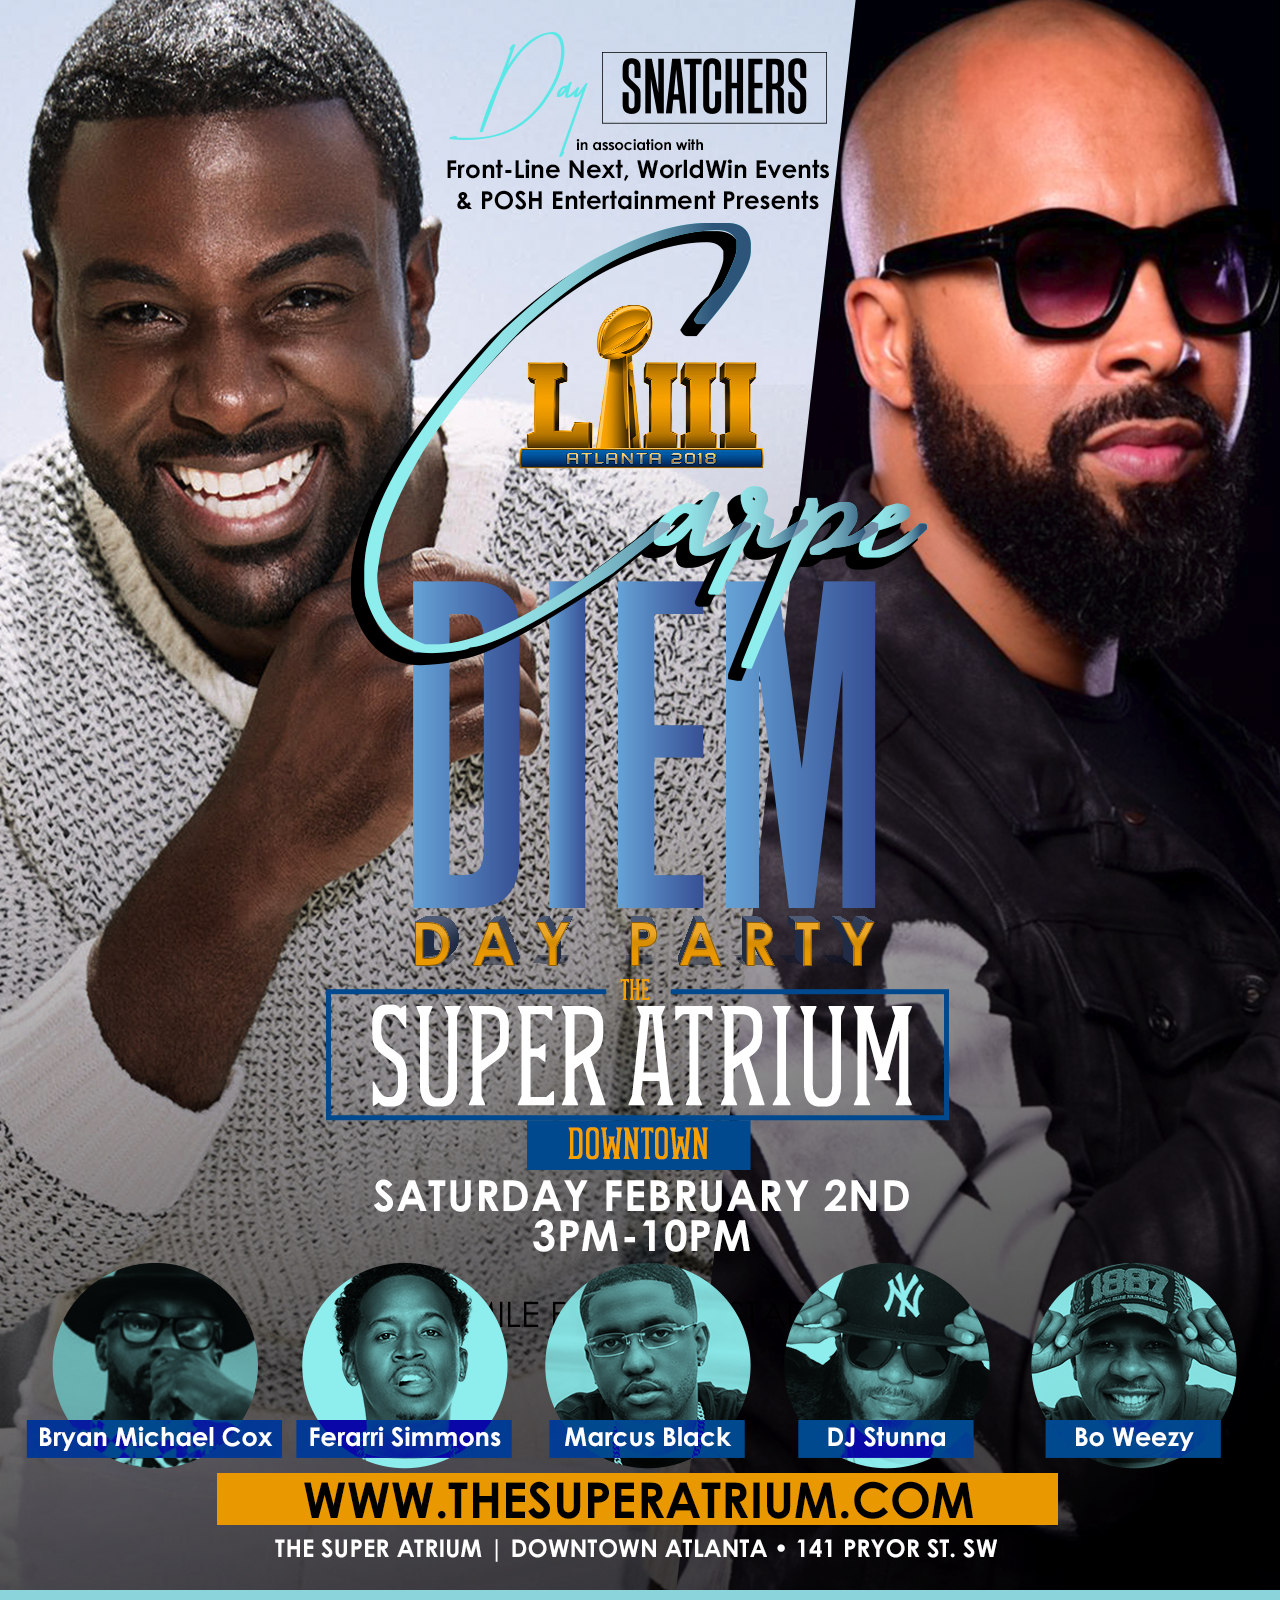 "Calling All #DaySnatchers | The Nations #1 Traveling Young Professional & HBCU Day Party Takes Over Super Bowl Weekend | An Event Catered To The Young Professionals Who Work Hard, To Play Even Harder | Join Us or The Ultimate Day Party Experience | Hosted by Kenny Burns ""The Lifestyle Specilist"", Lance Gross and Many More Celebs & Athletes Already Comfirmed"